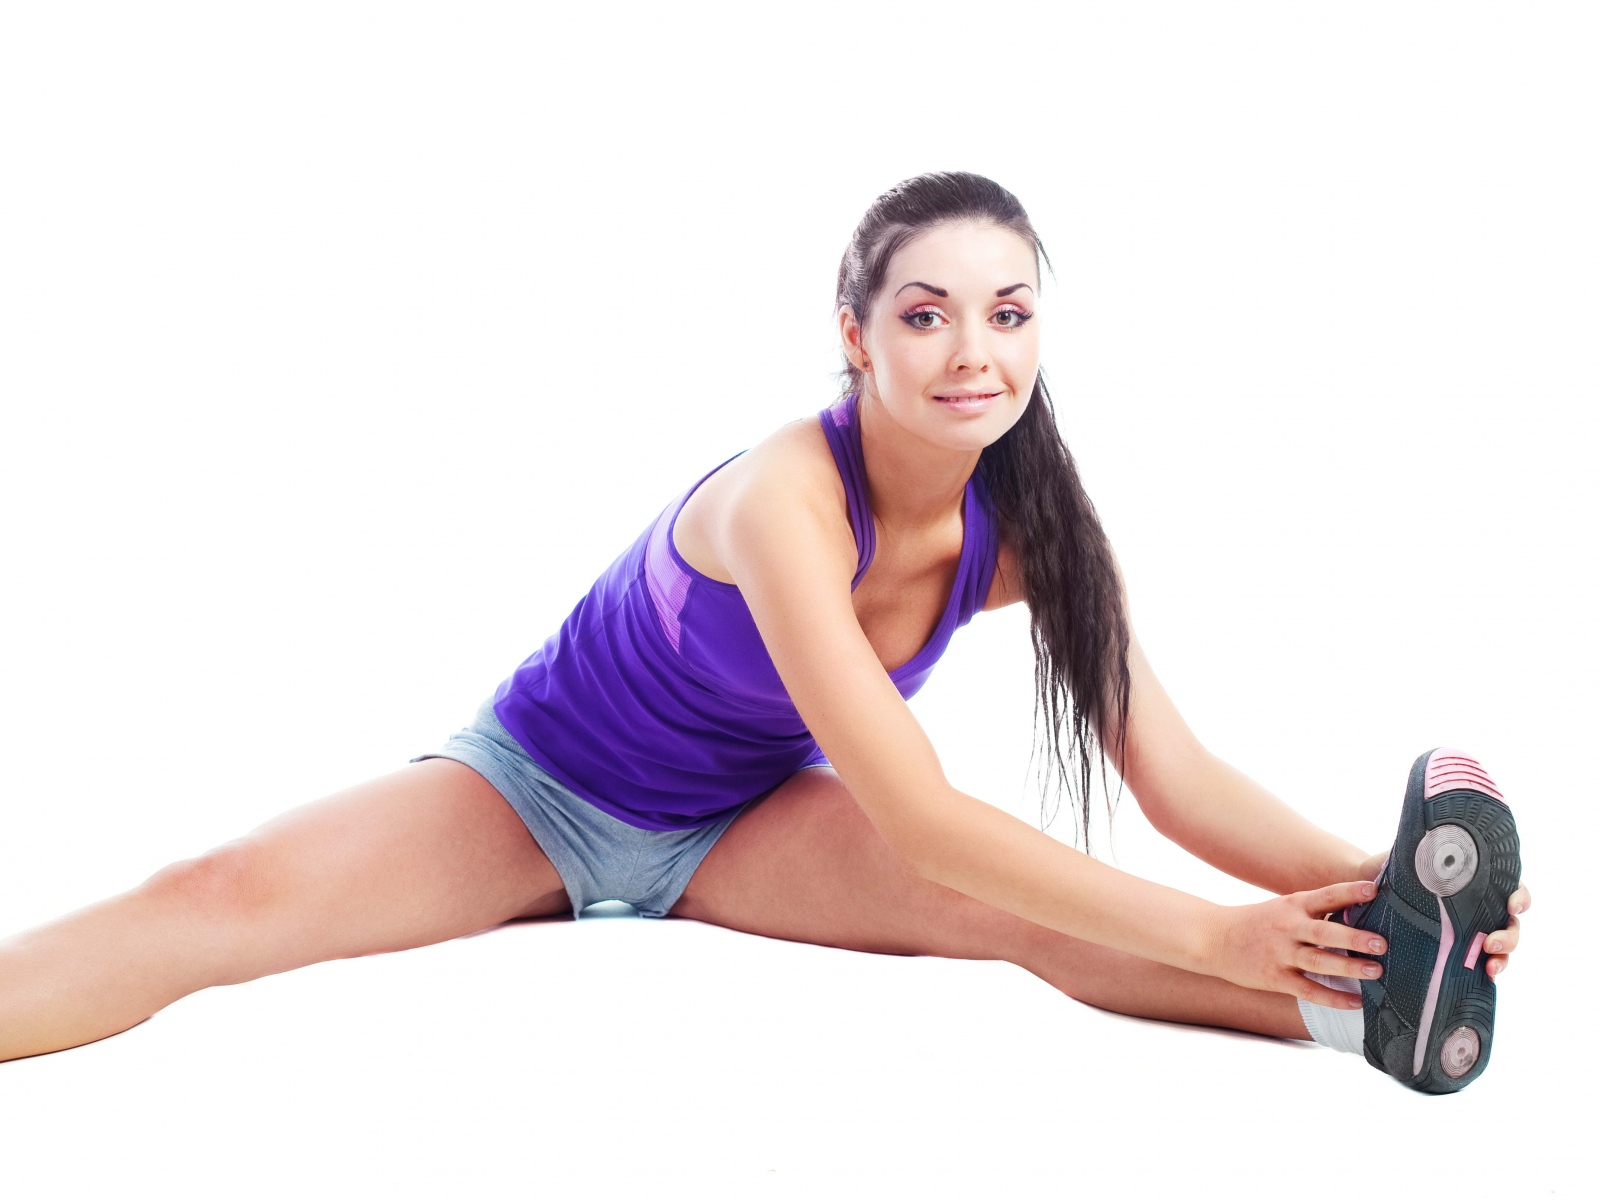 fitness_girl_white_background_79985_1600x1200